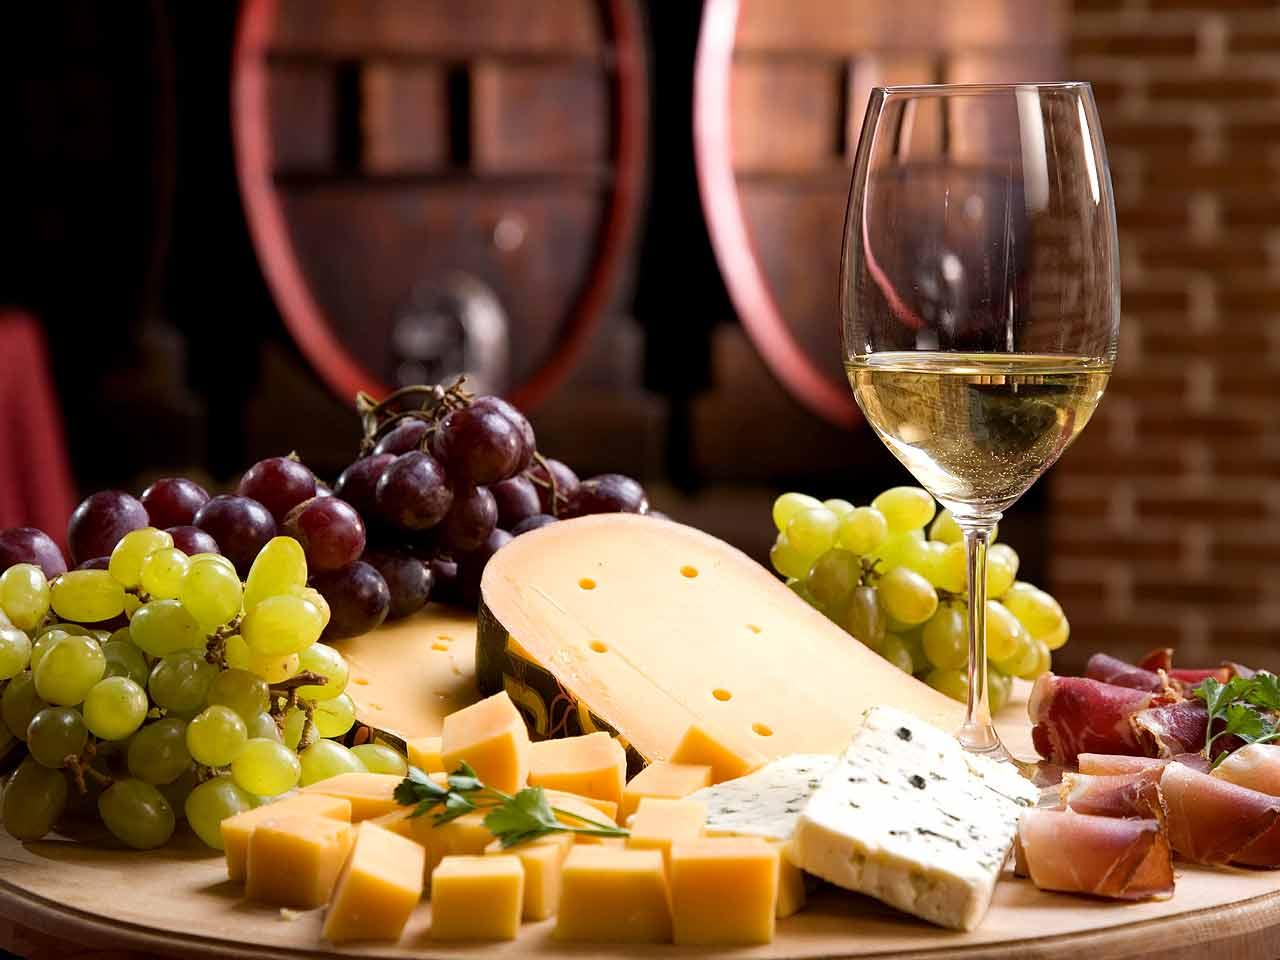 1511_-_Wine_and_Cheese.jpg